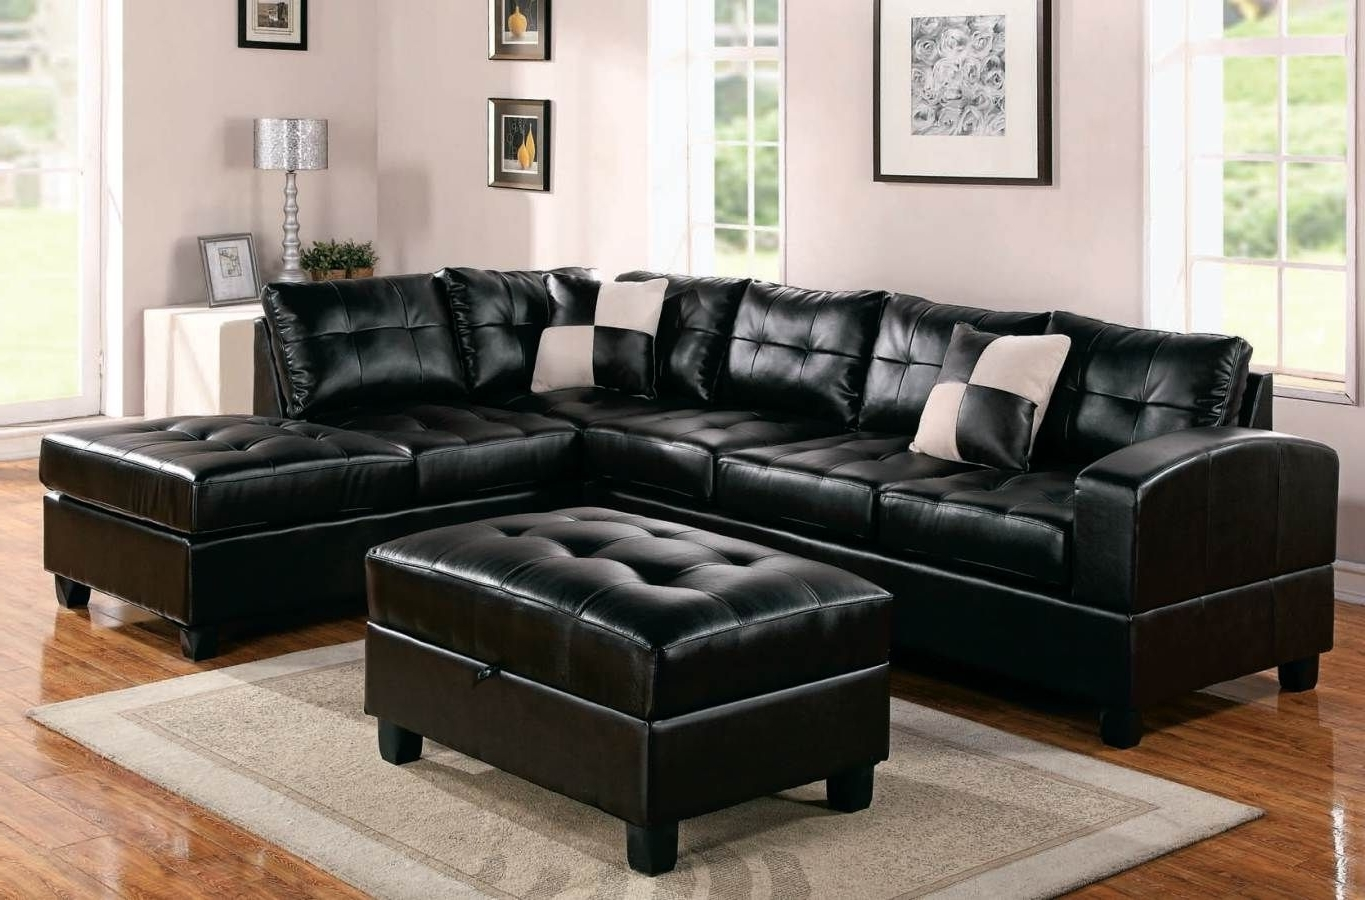 Family Room With Black Leather Sectionals With Ottoman (View 9 of 20)